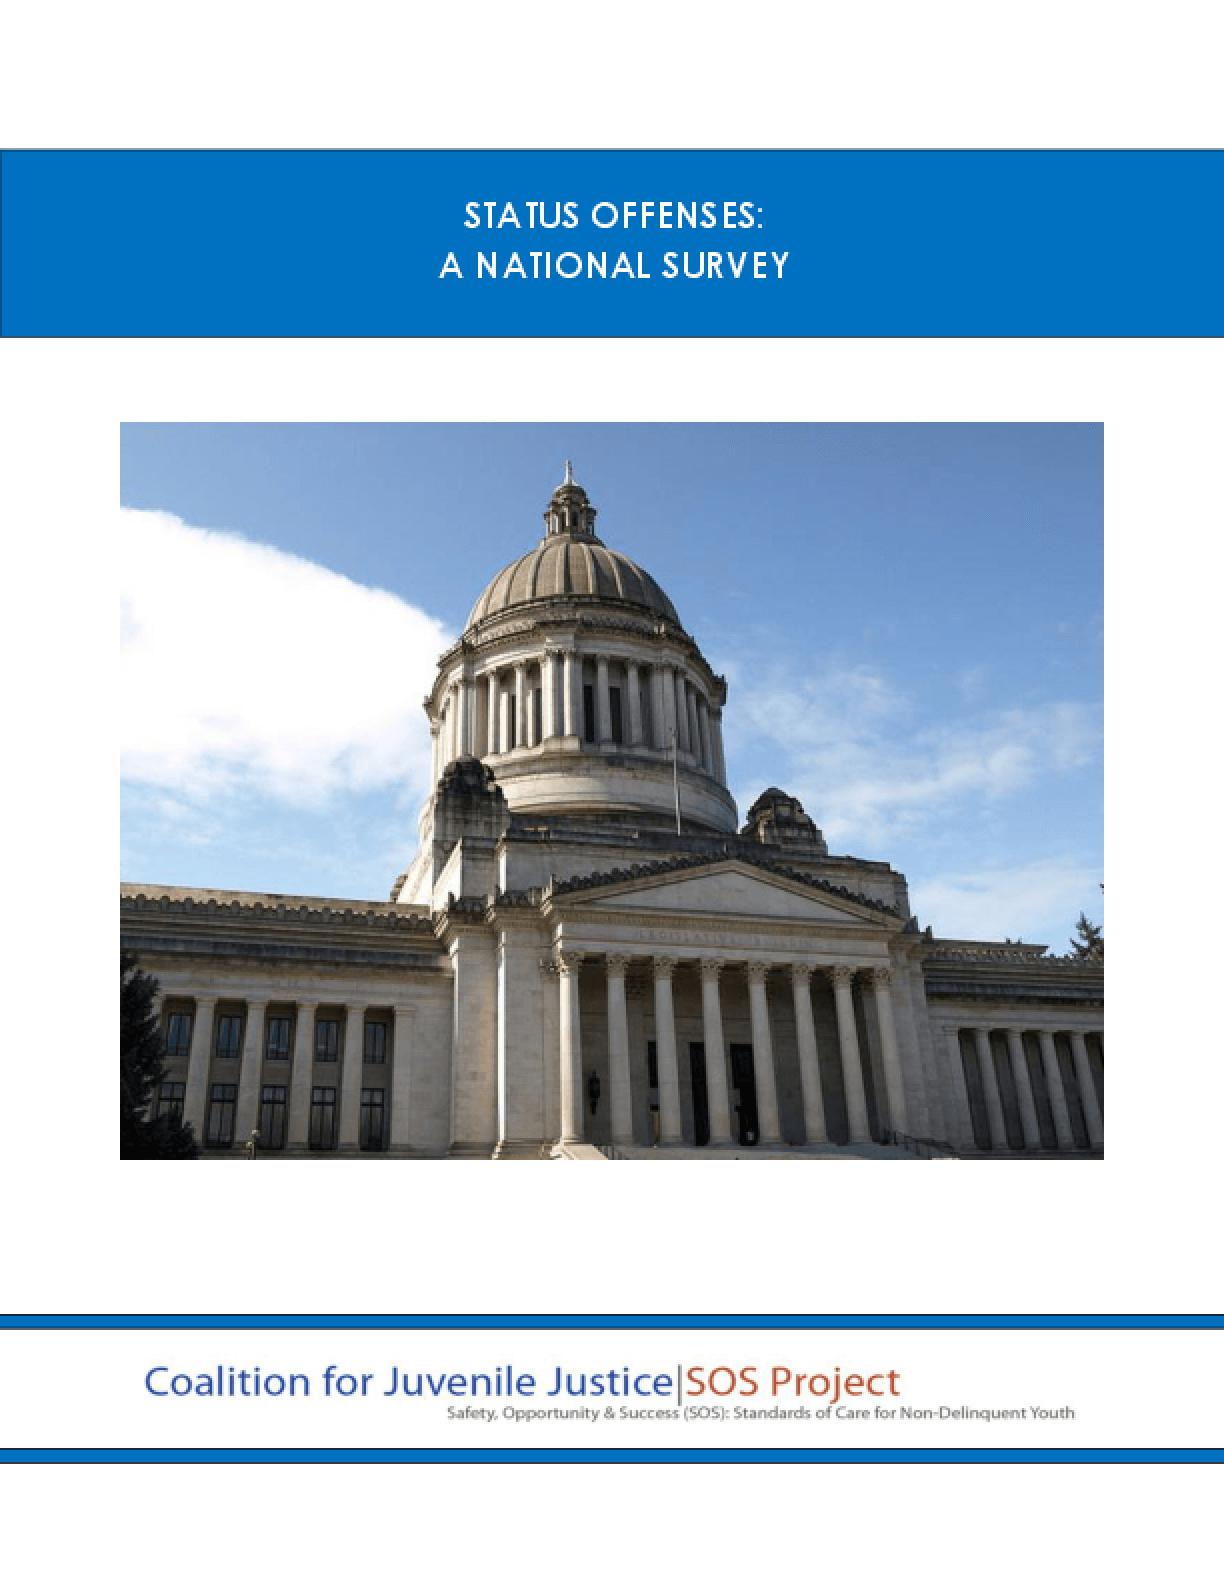 Status Offenses: A National Survey